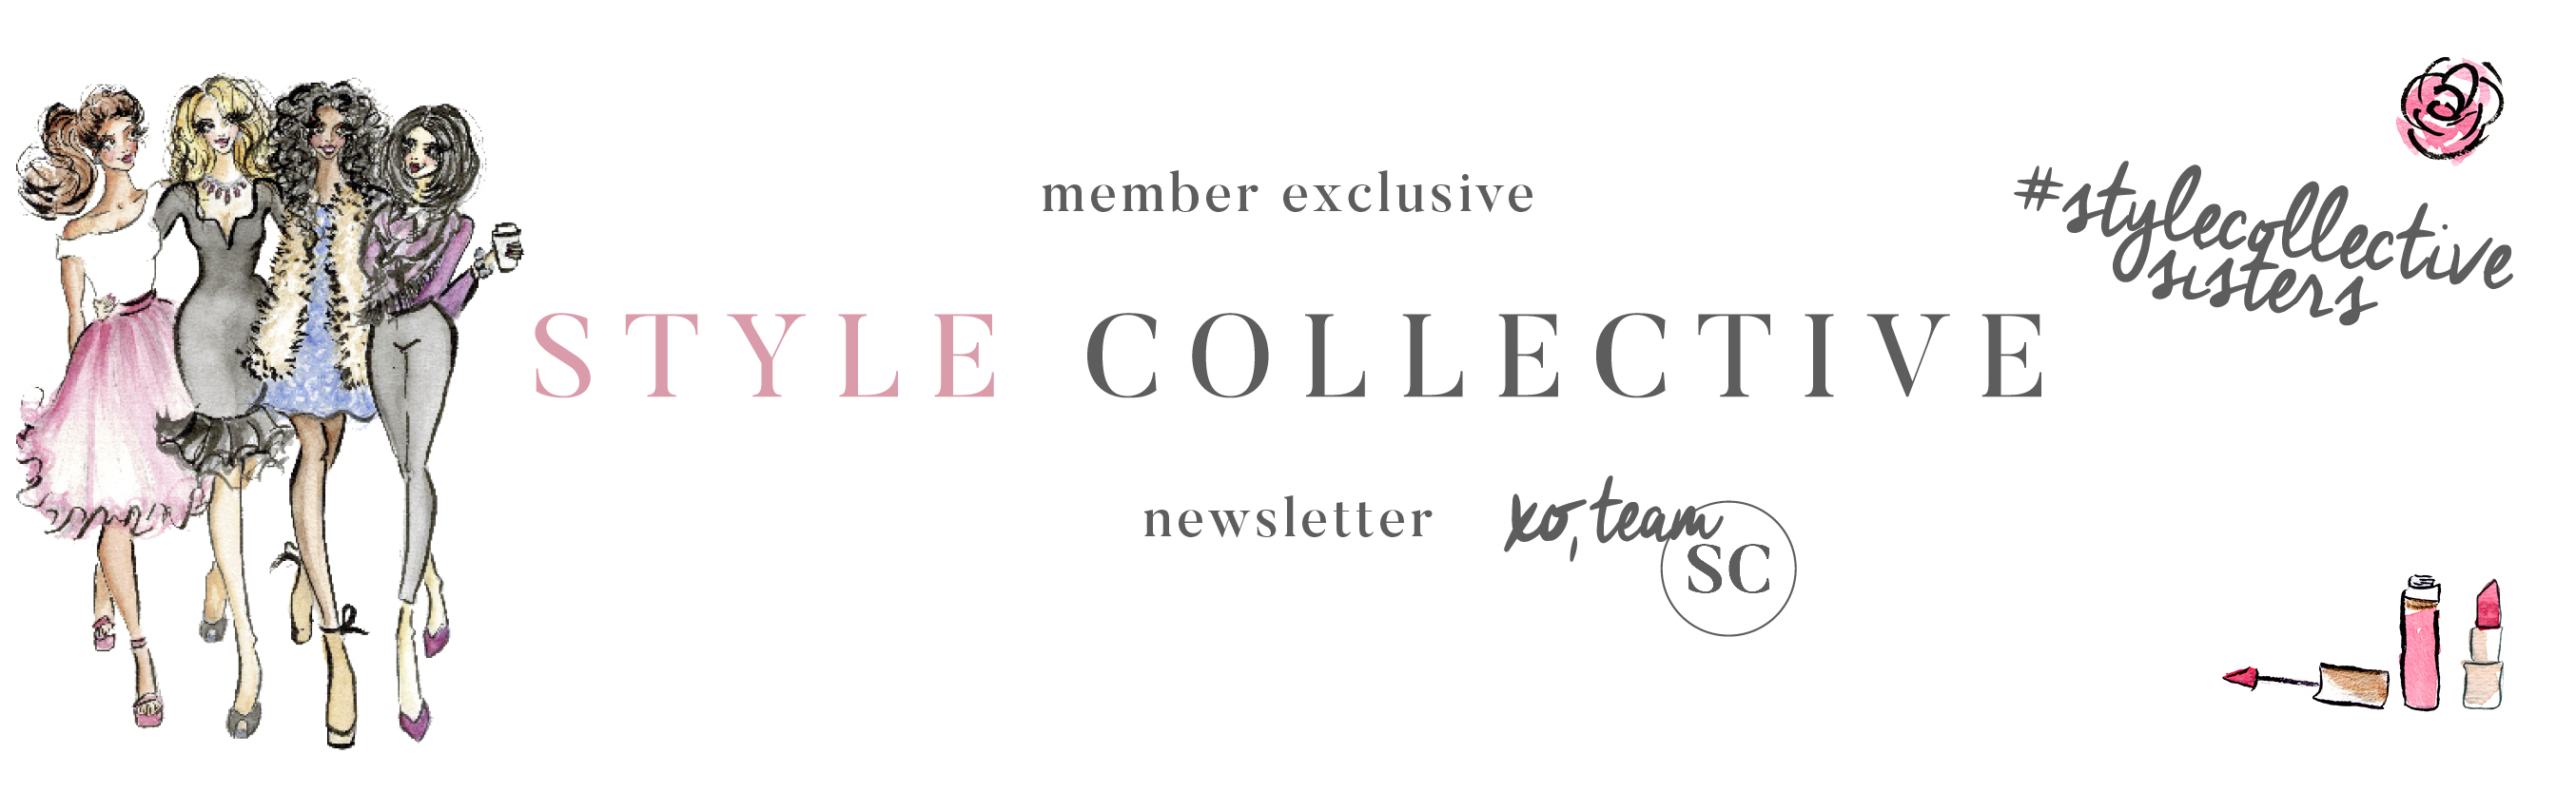 Super obsessed with the new email header!